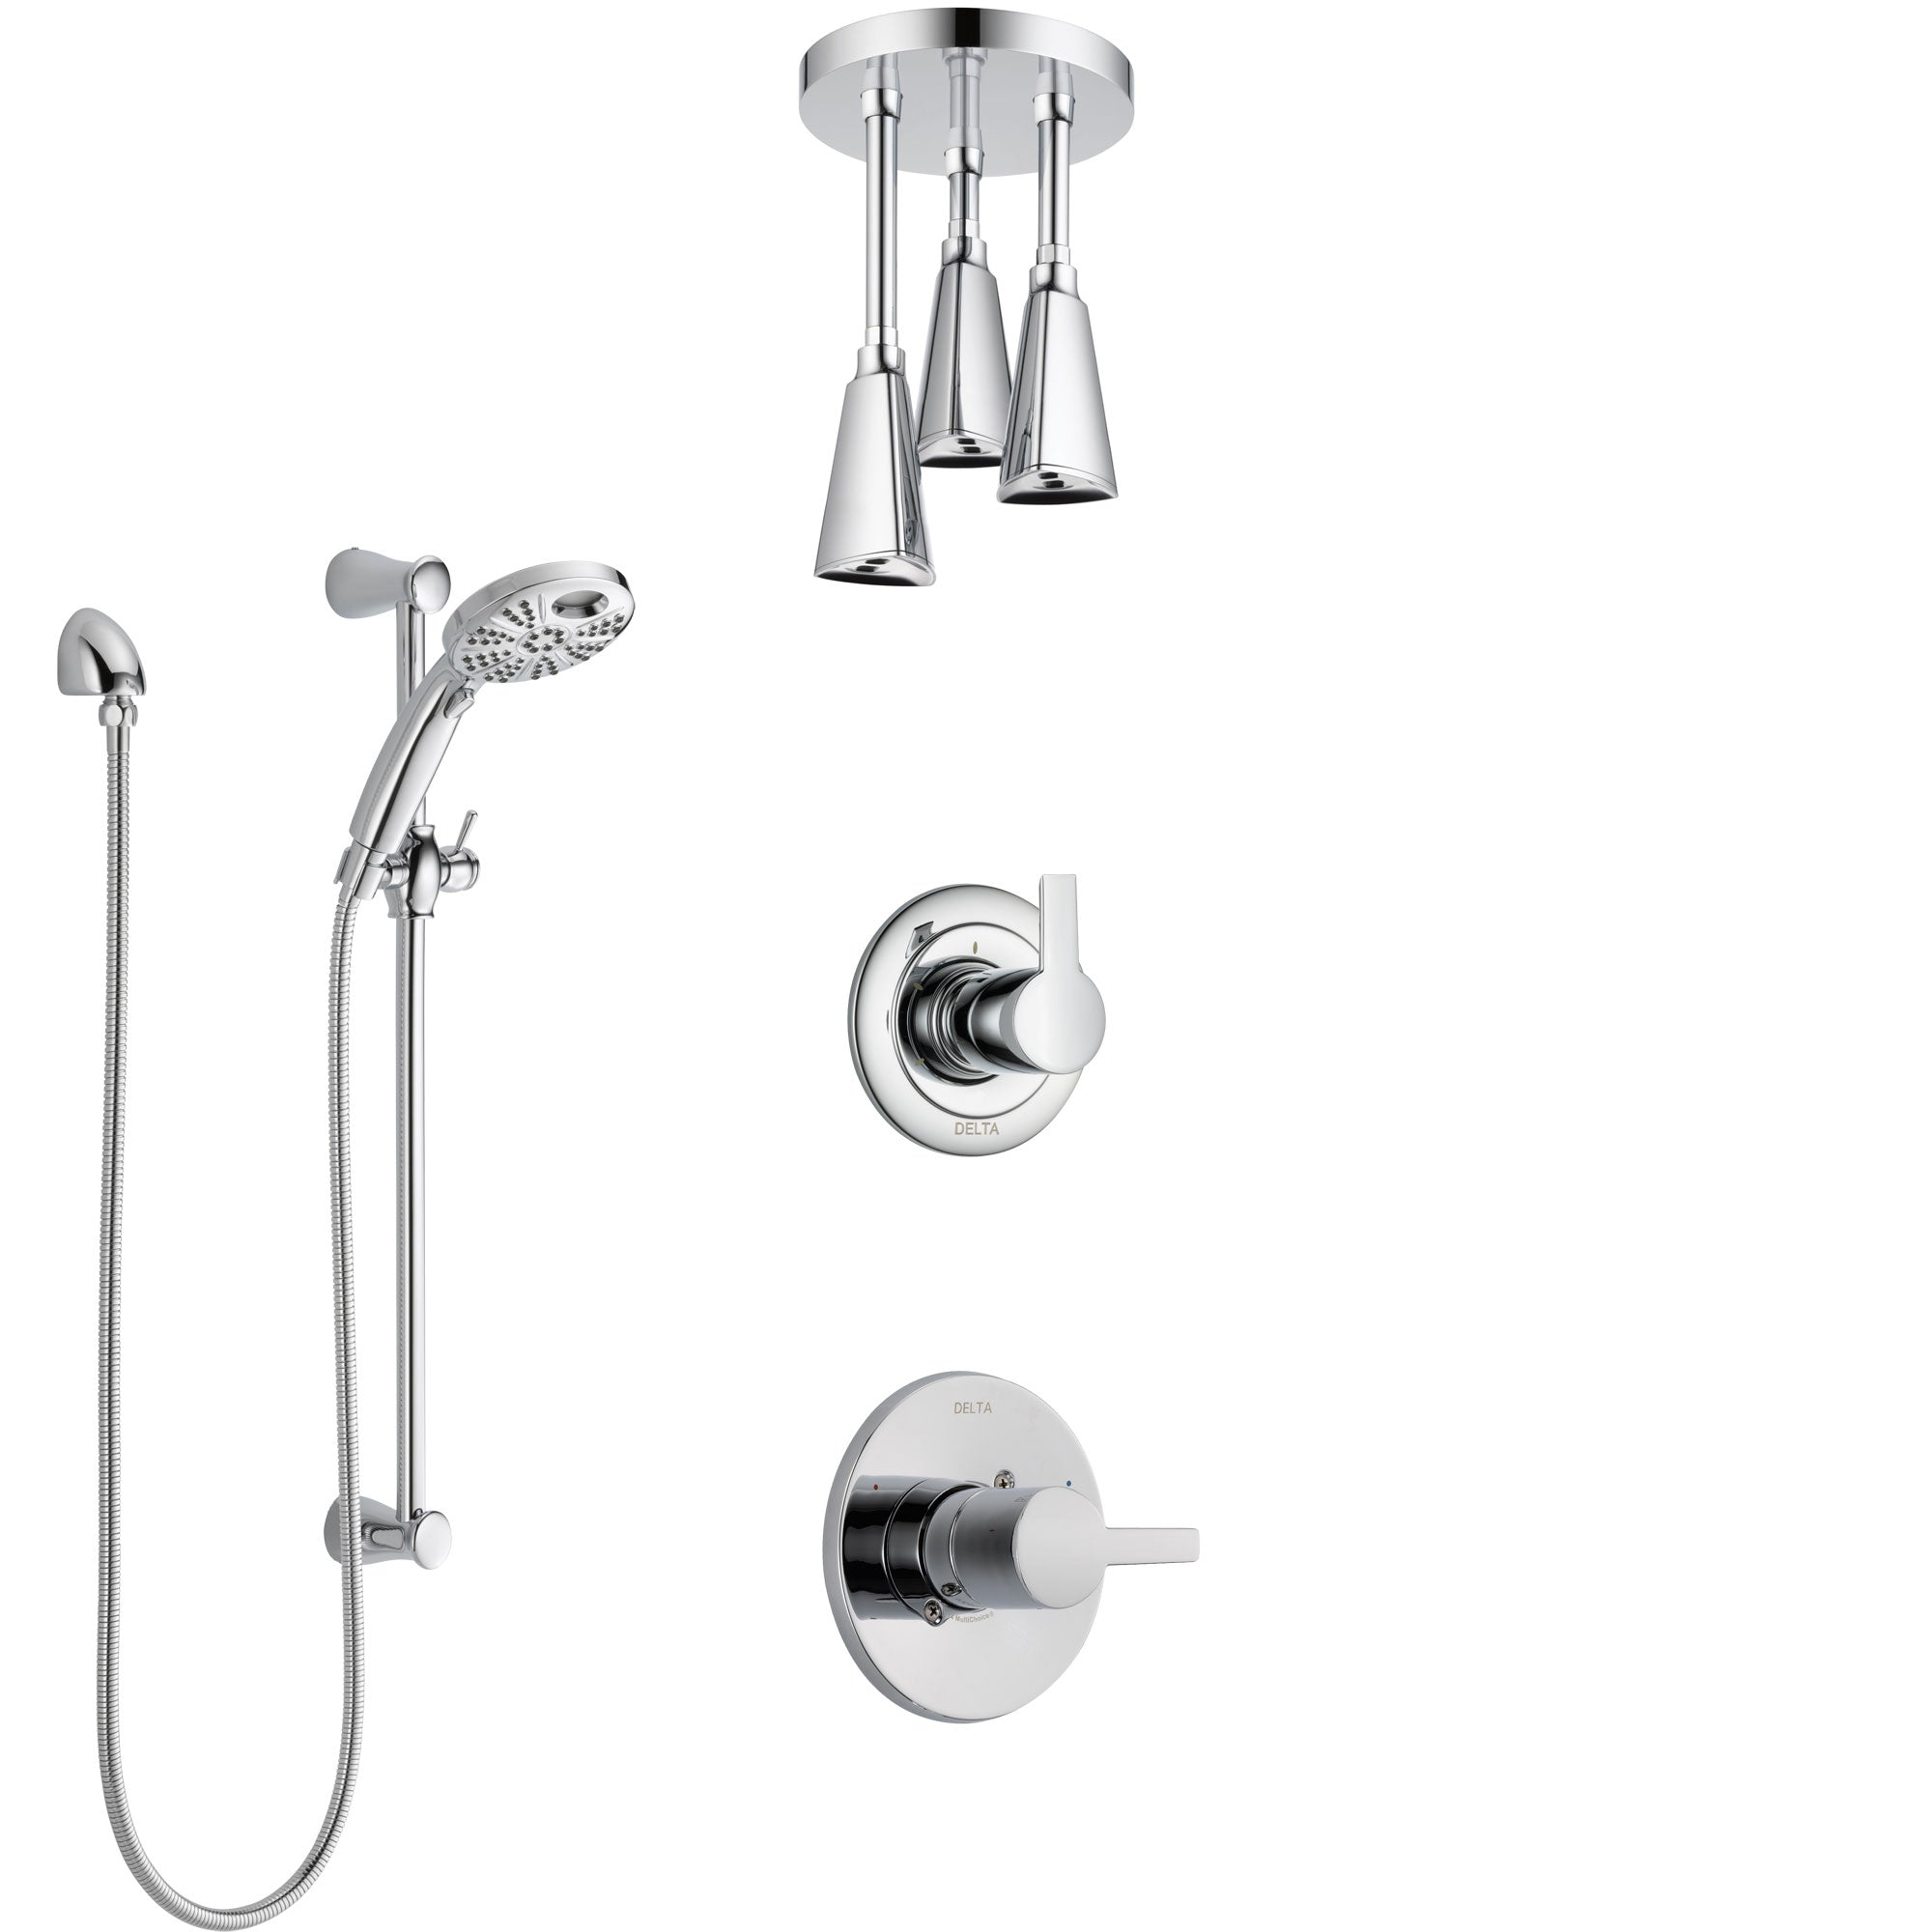 Delta Compel Chrome Finish Shower System with Control Handle, 3-Setting Diverter, Ceiling Mount Showerhead, & Temp2O Hand Shower with Slidebar SS14617